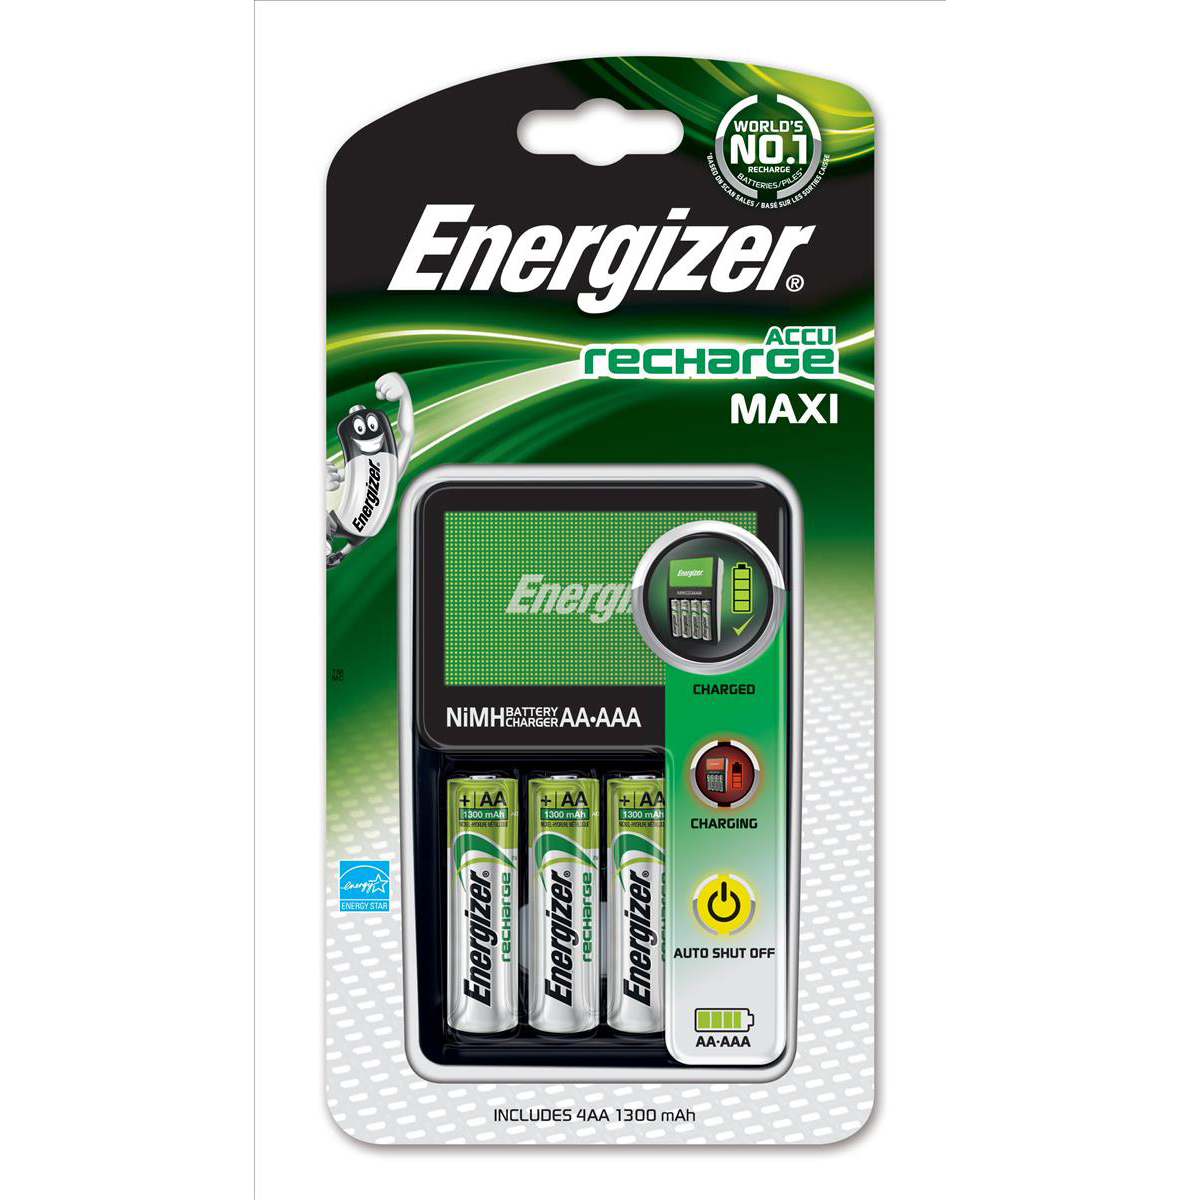 Image for Energizer 1300 Maxi Battery Charger CHVCM4 for AA AAA with 4x AA 2000mAh Batteries Ref 632325